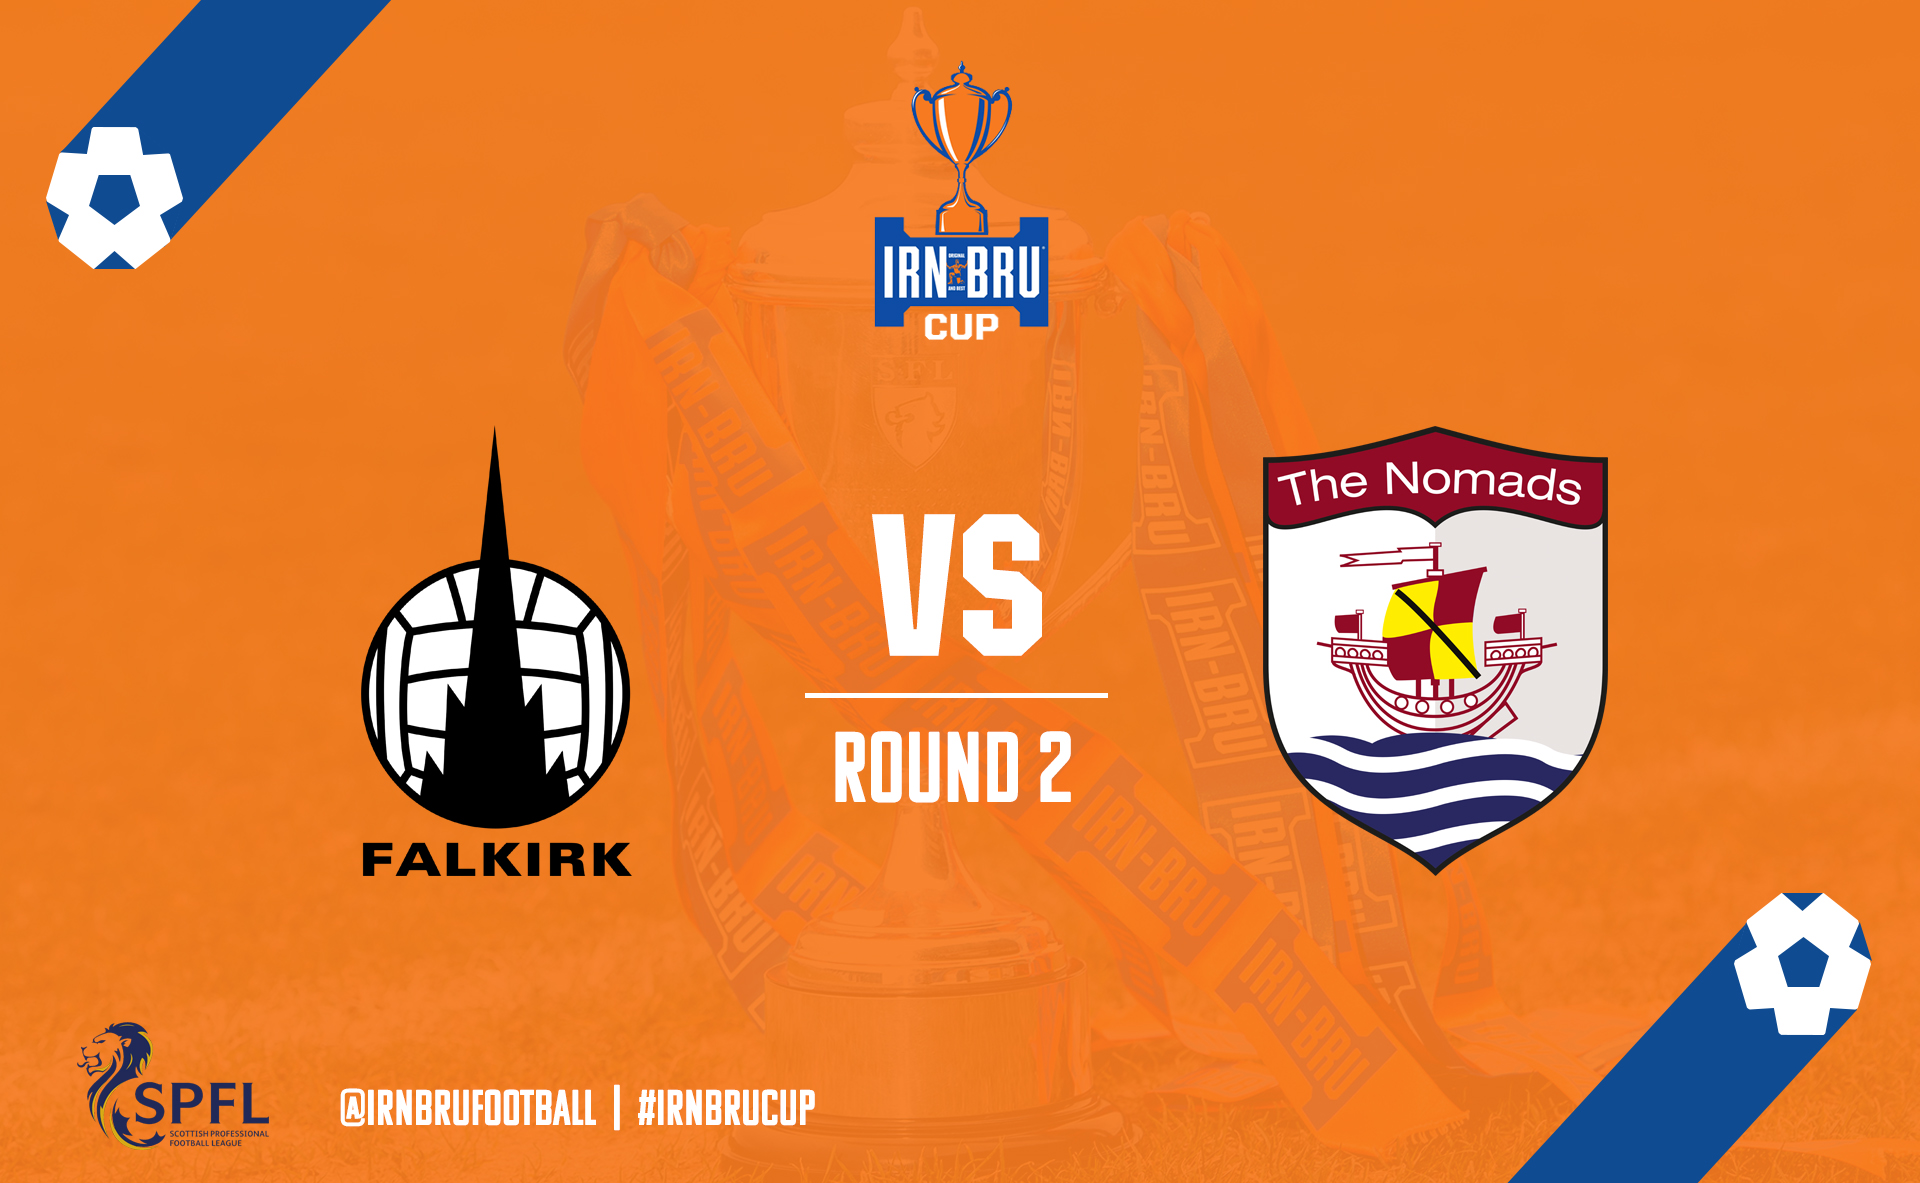 Falkirk vs Connah's Quay Nomads | Irn Bru Cup Second Round